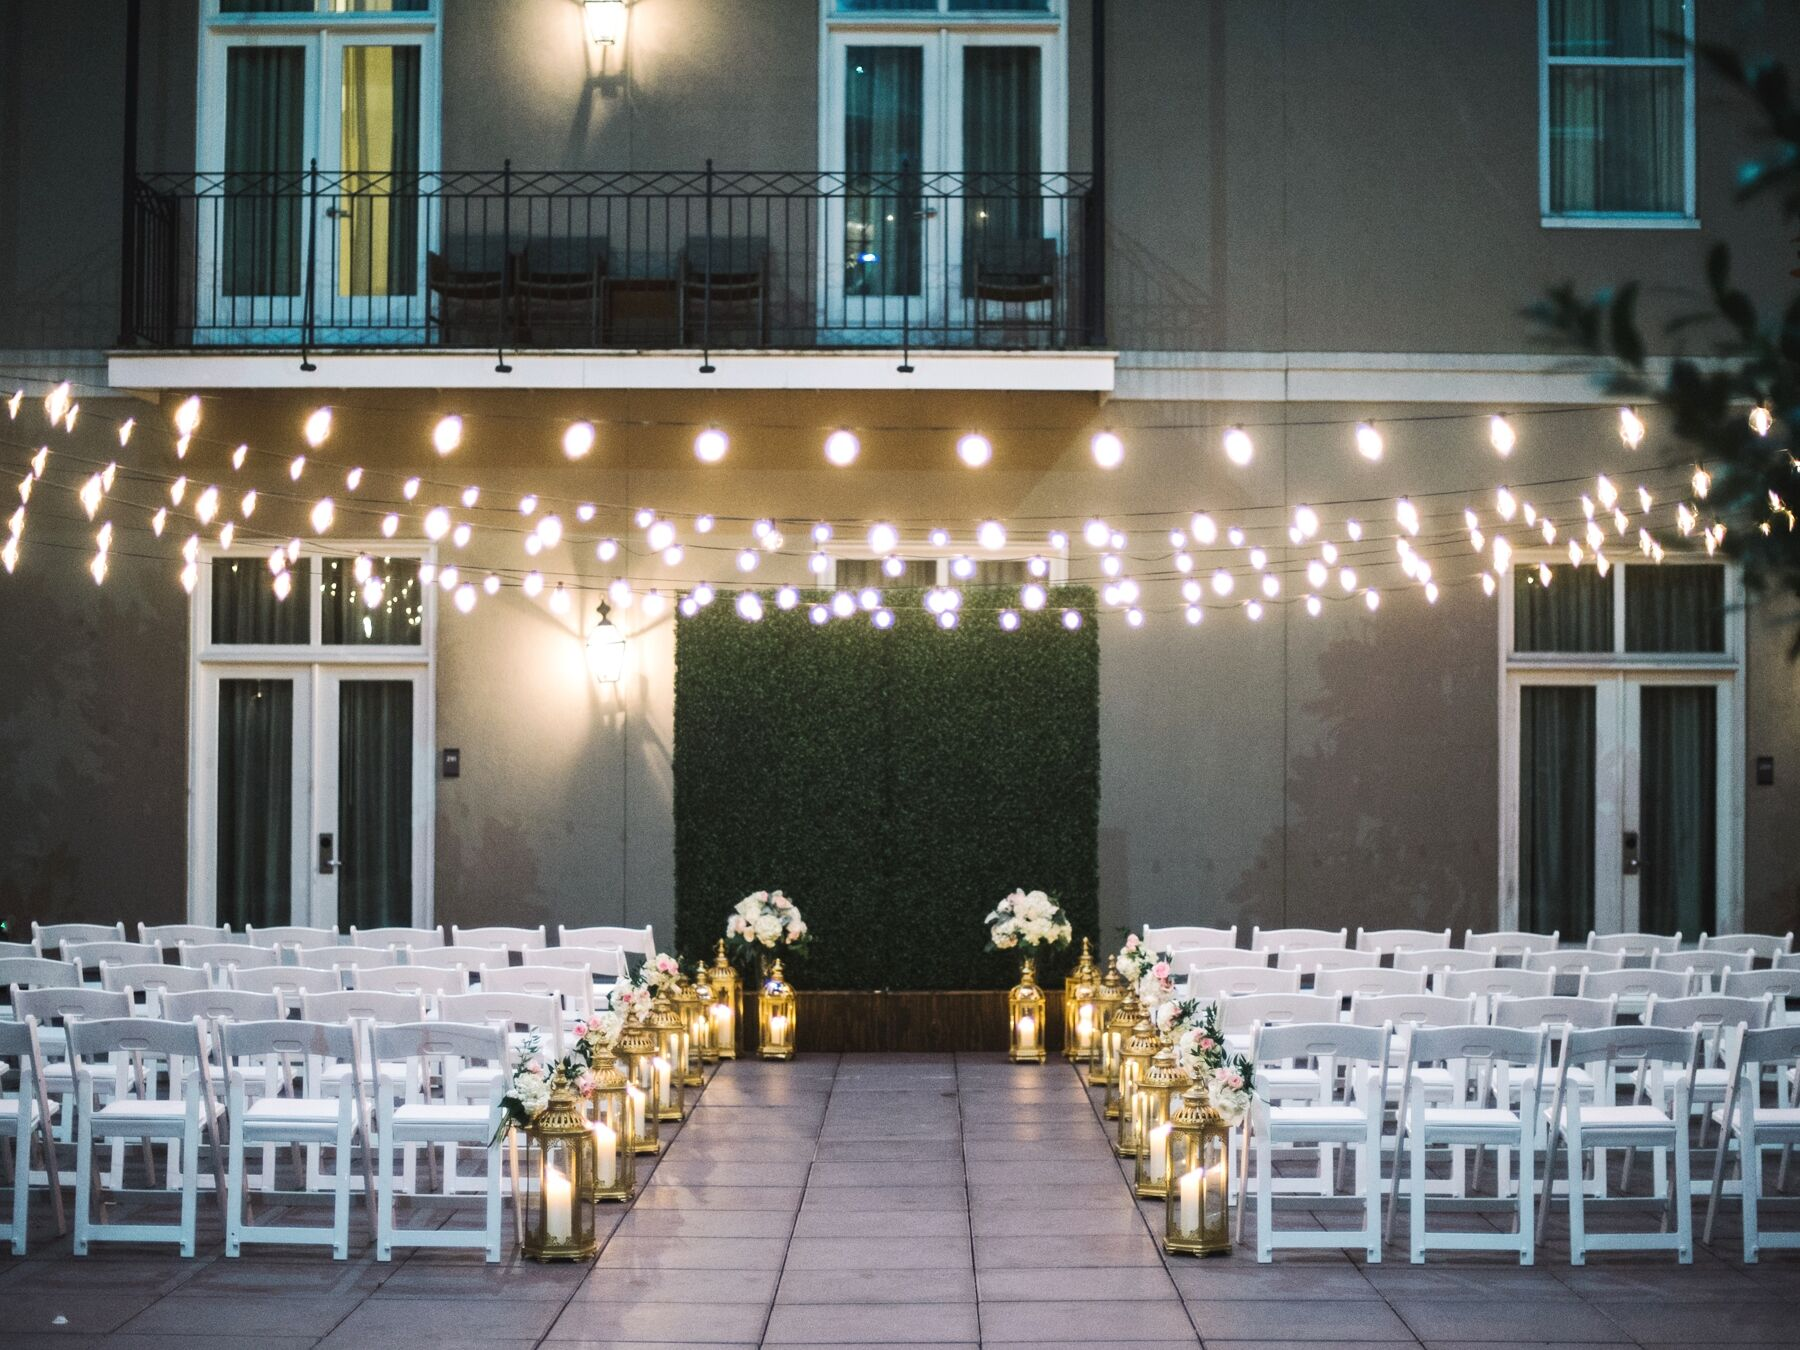 Wedding reception venues in new orleans la the knot hyatt centric french quarter new orleans junglespirit Choice Image